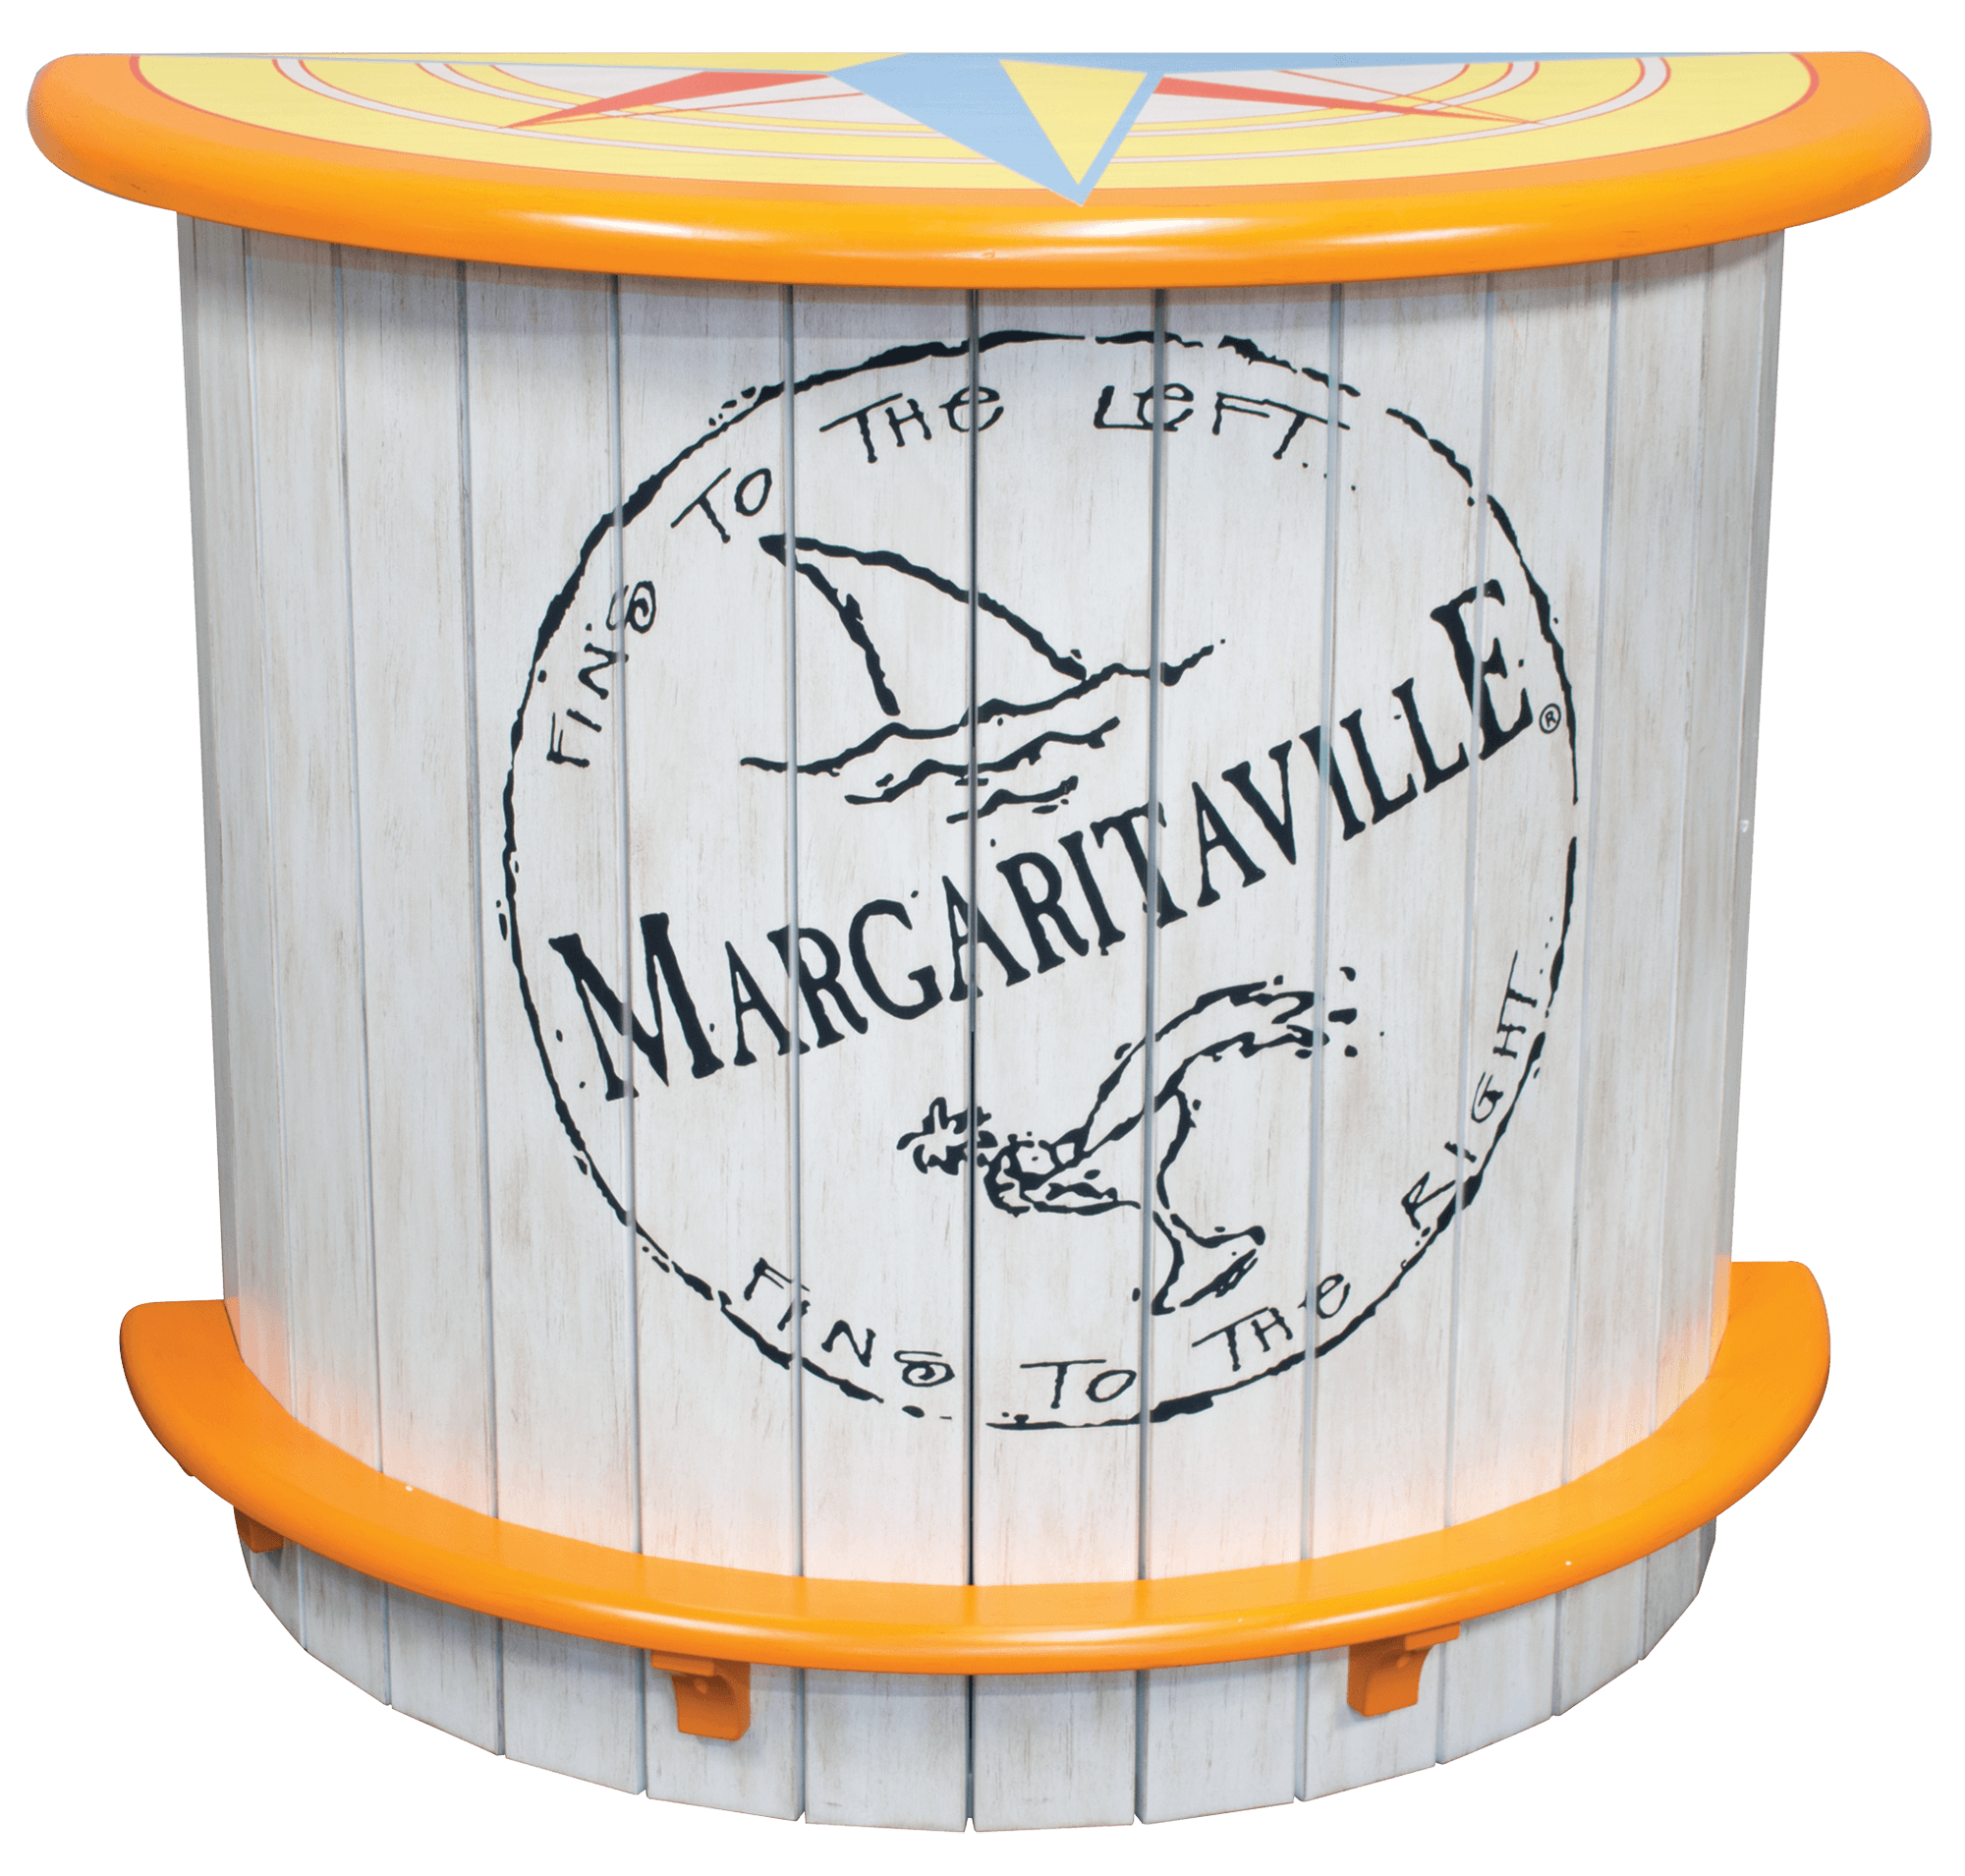 Margaritaville Half Moon Bar – Fins to the Left